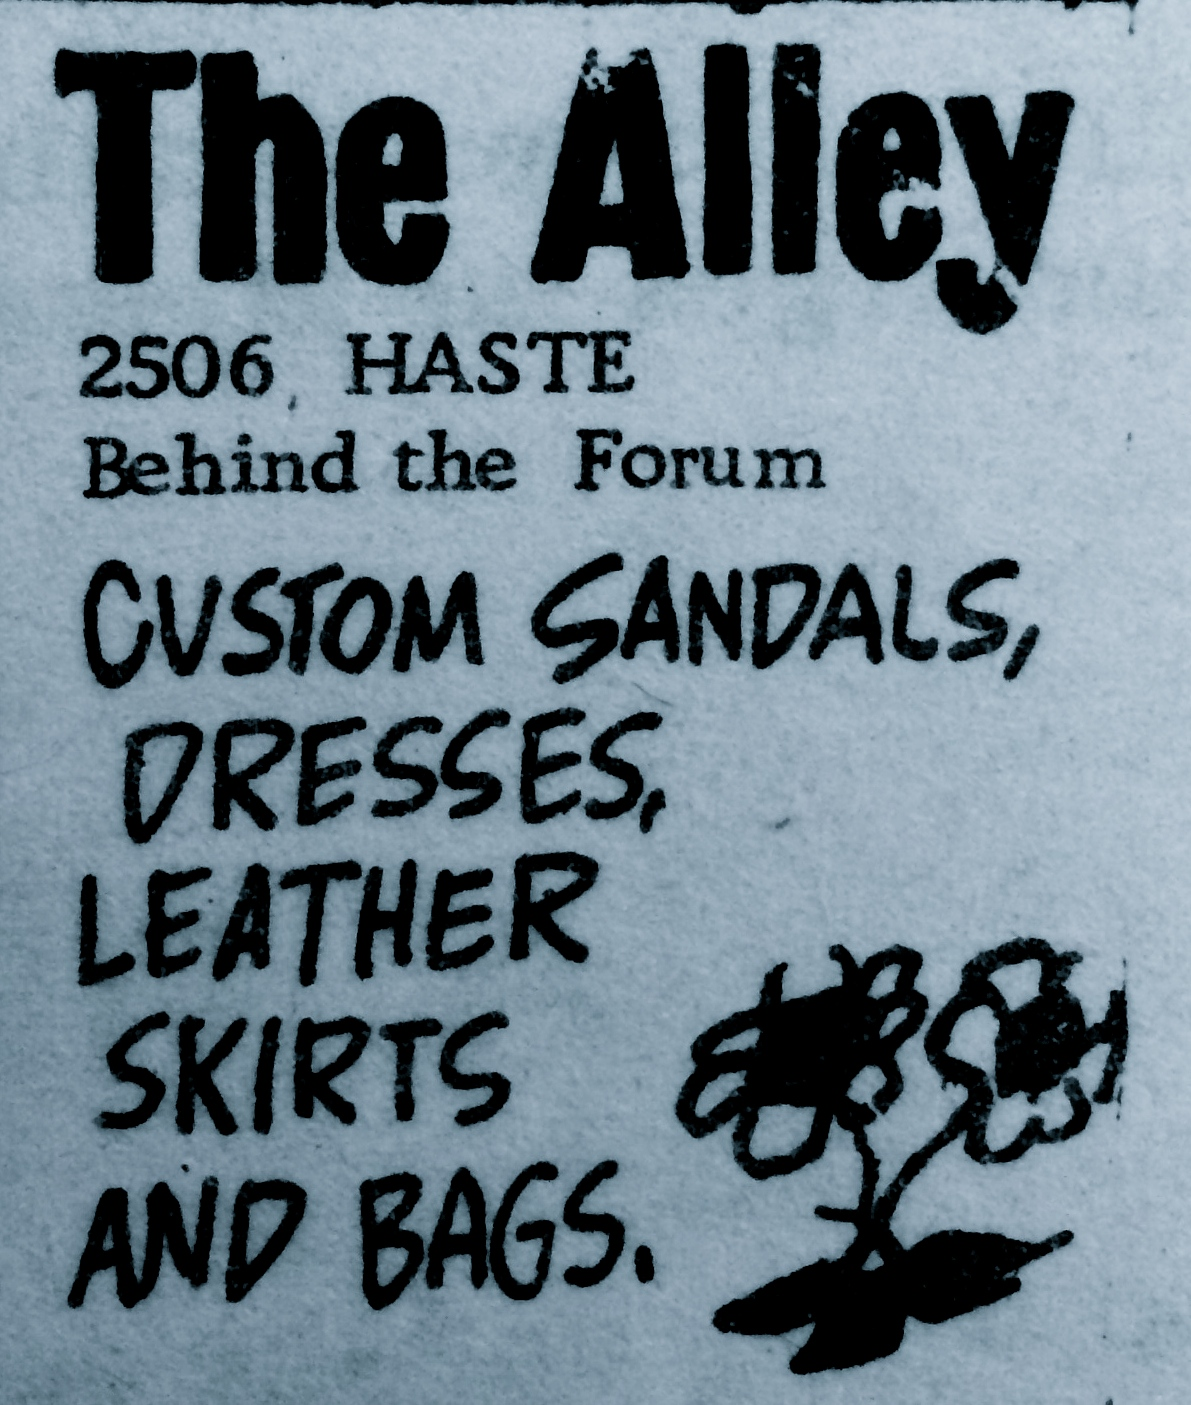 2506 Haate The alley Citizen 1966 copy